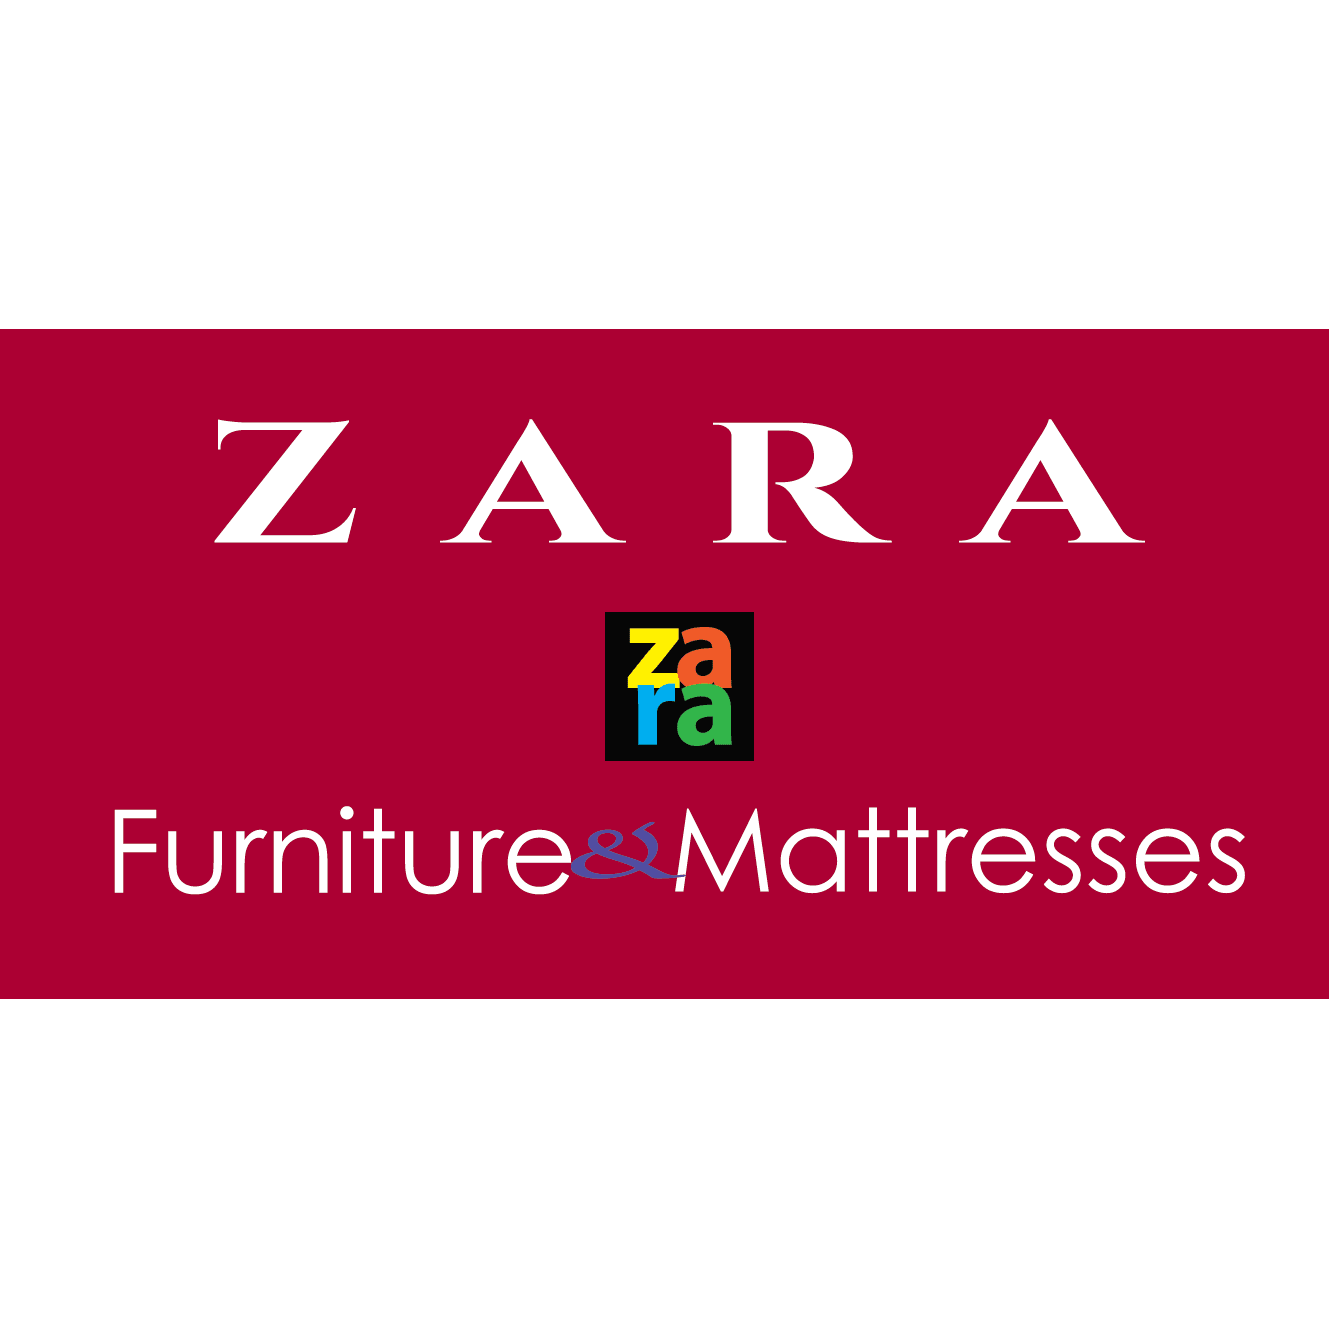 Zara Furniture